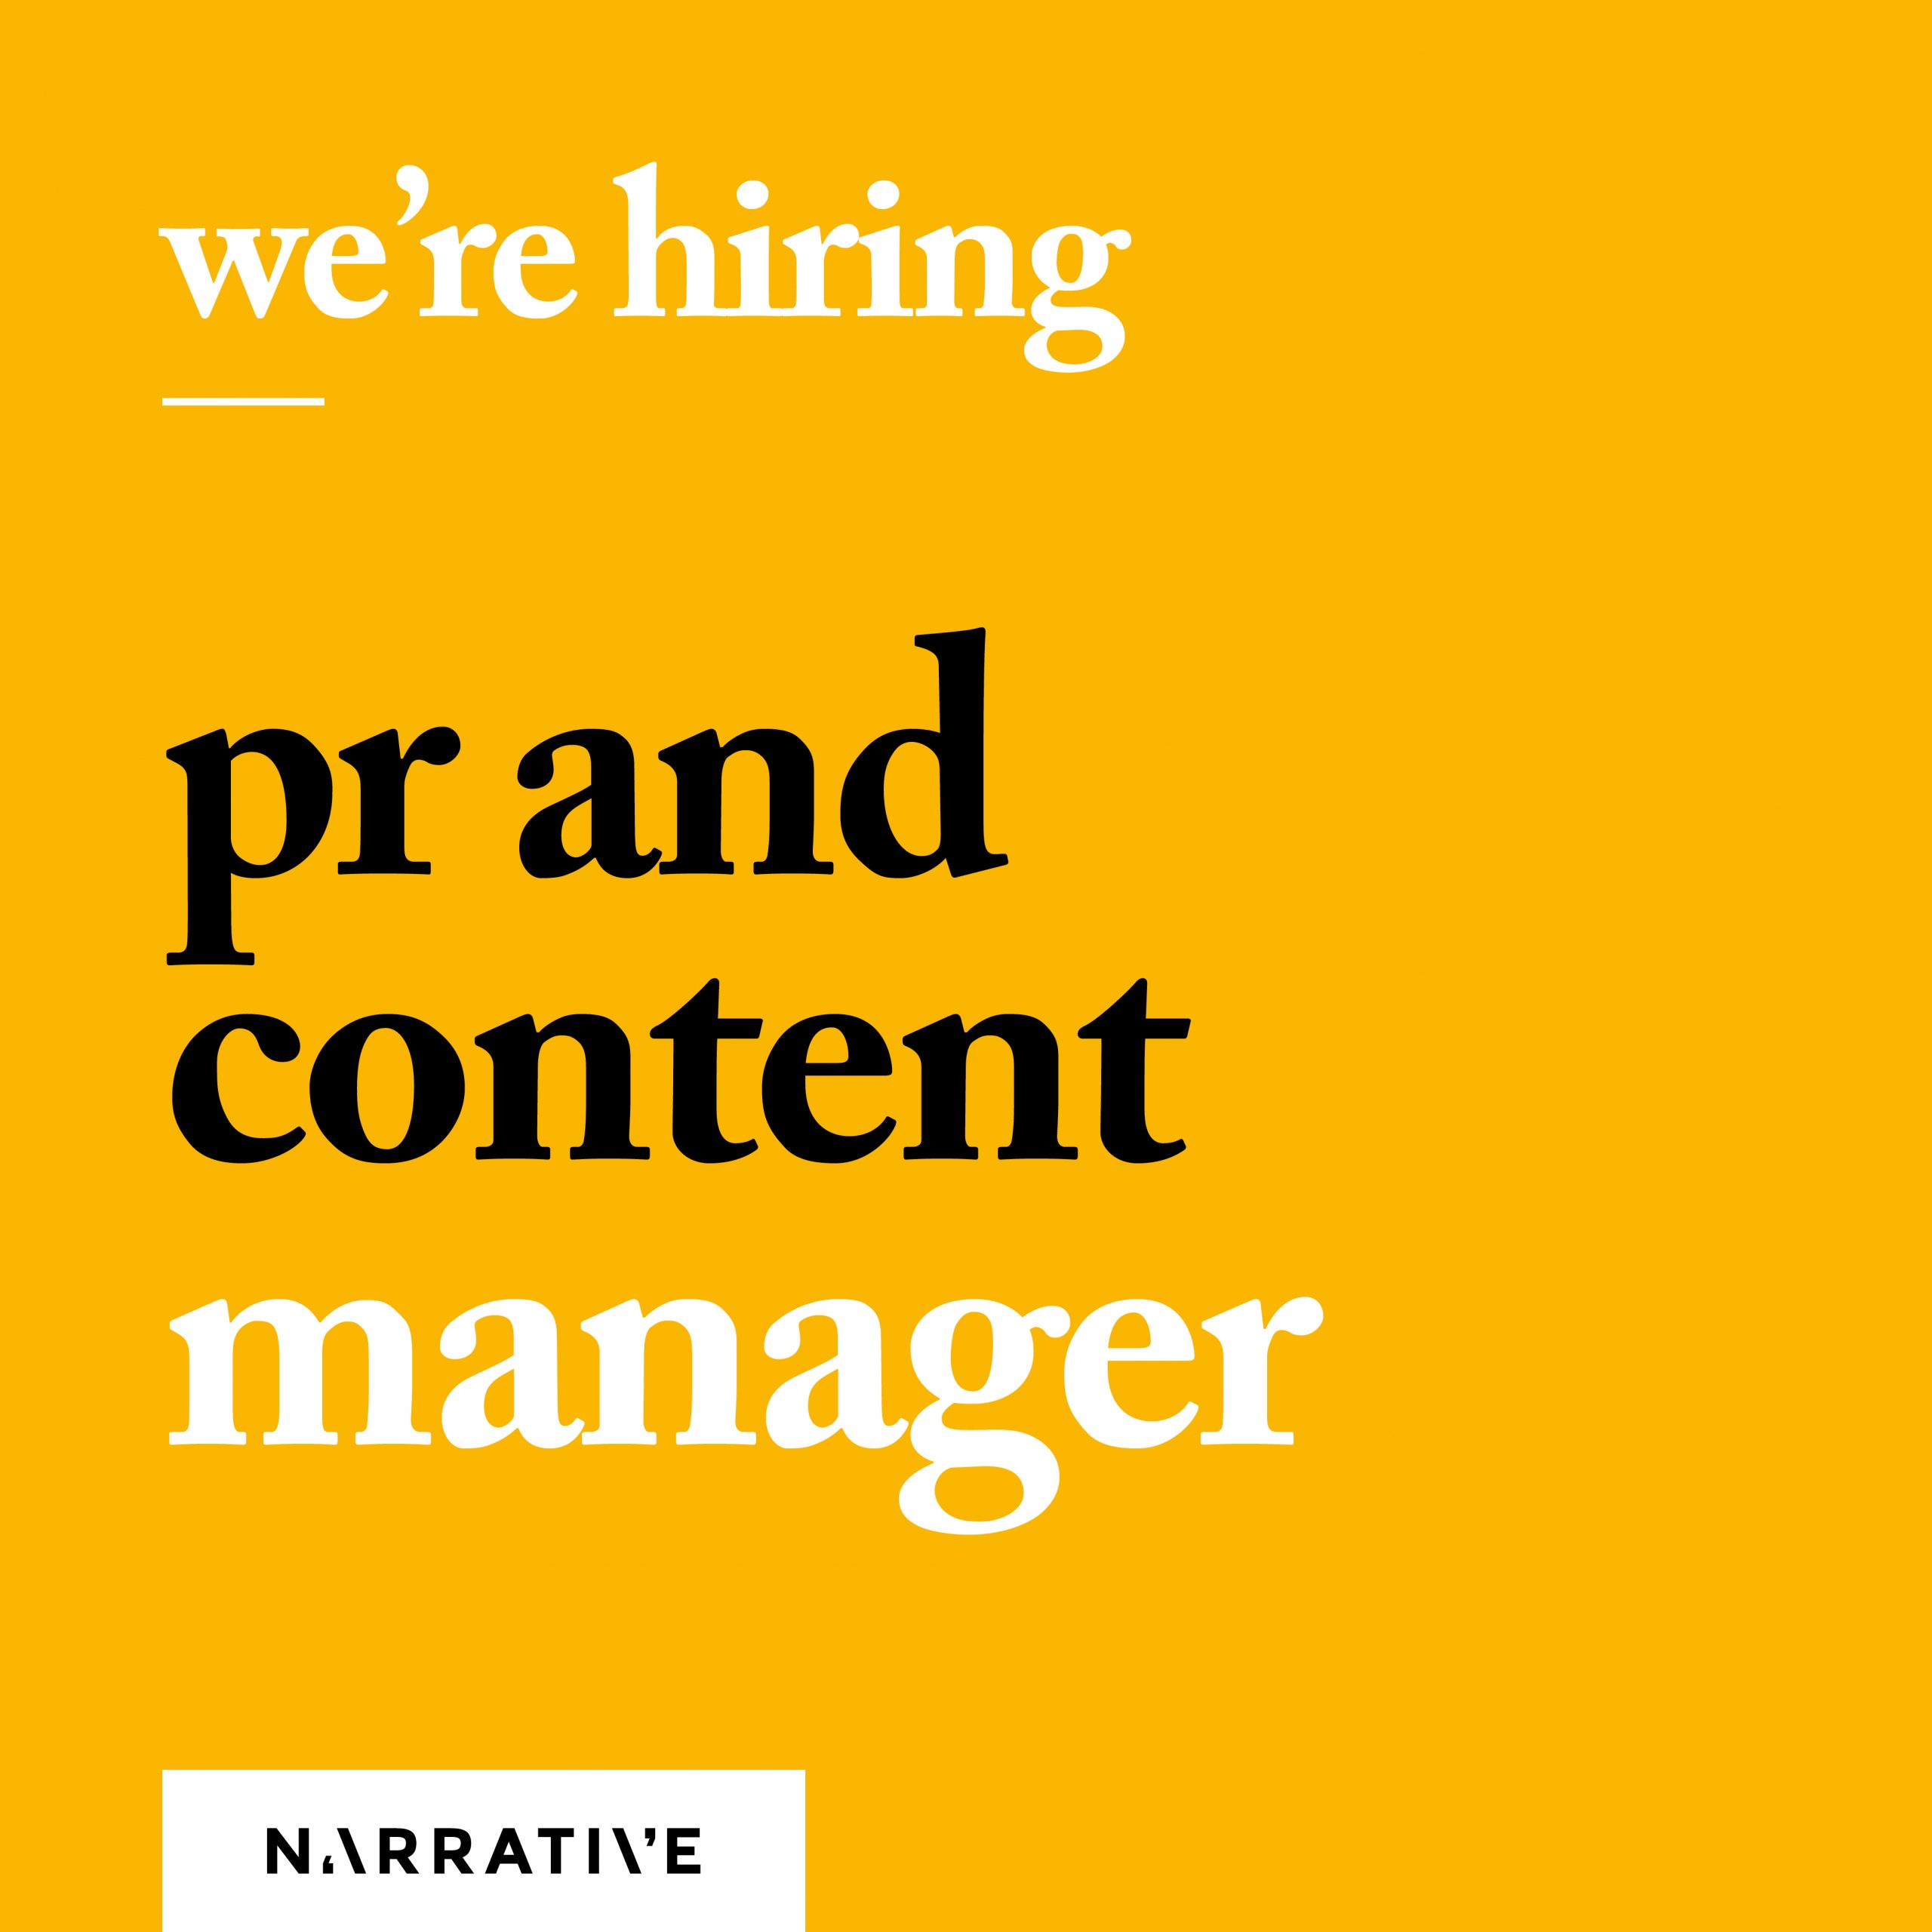 PR and Content Manager graphic